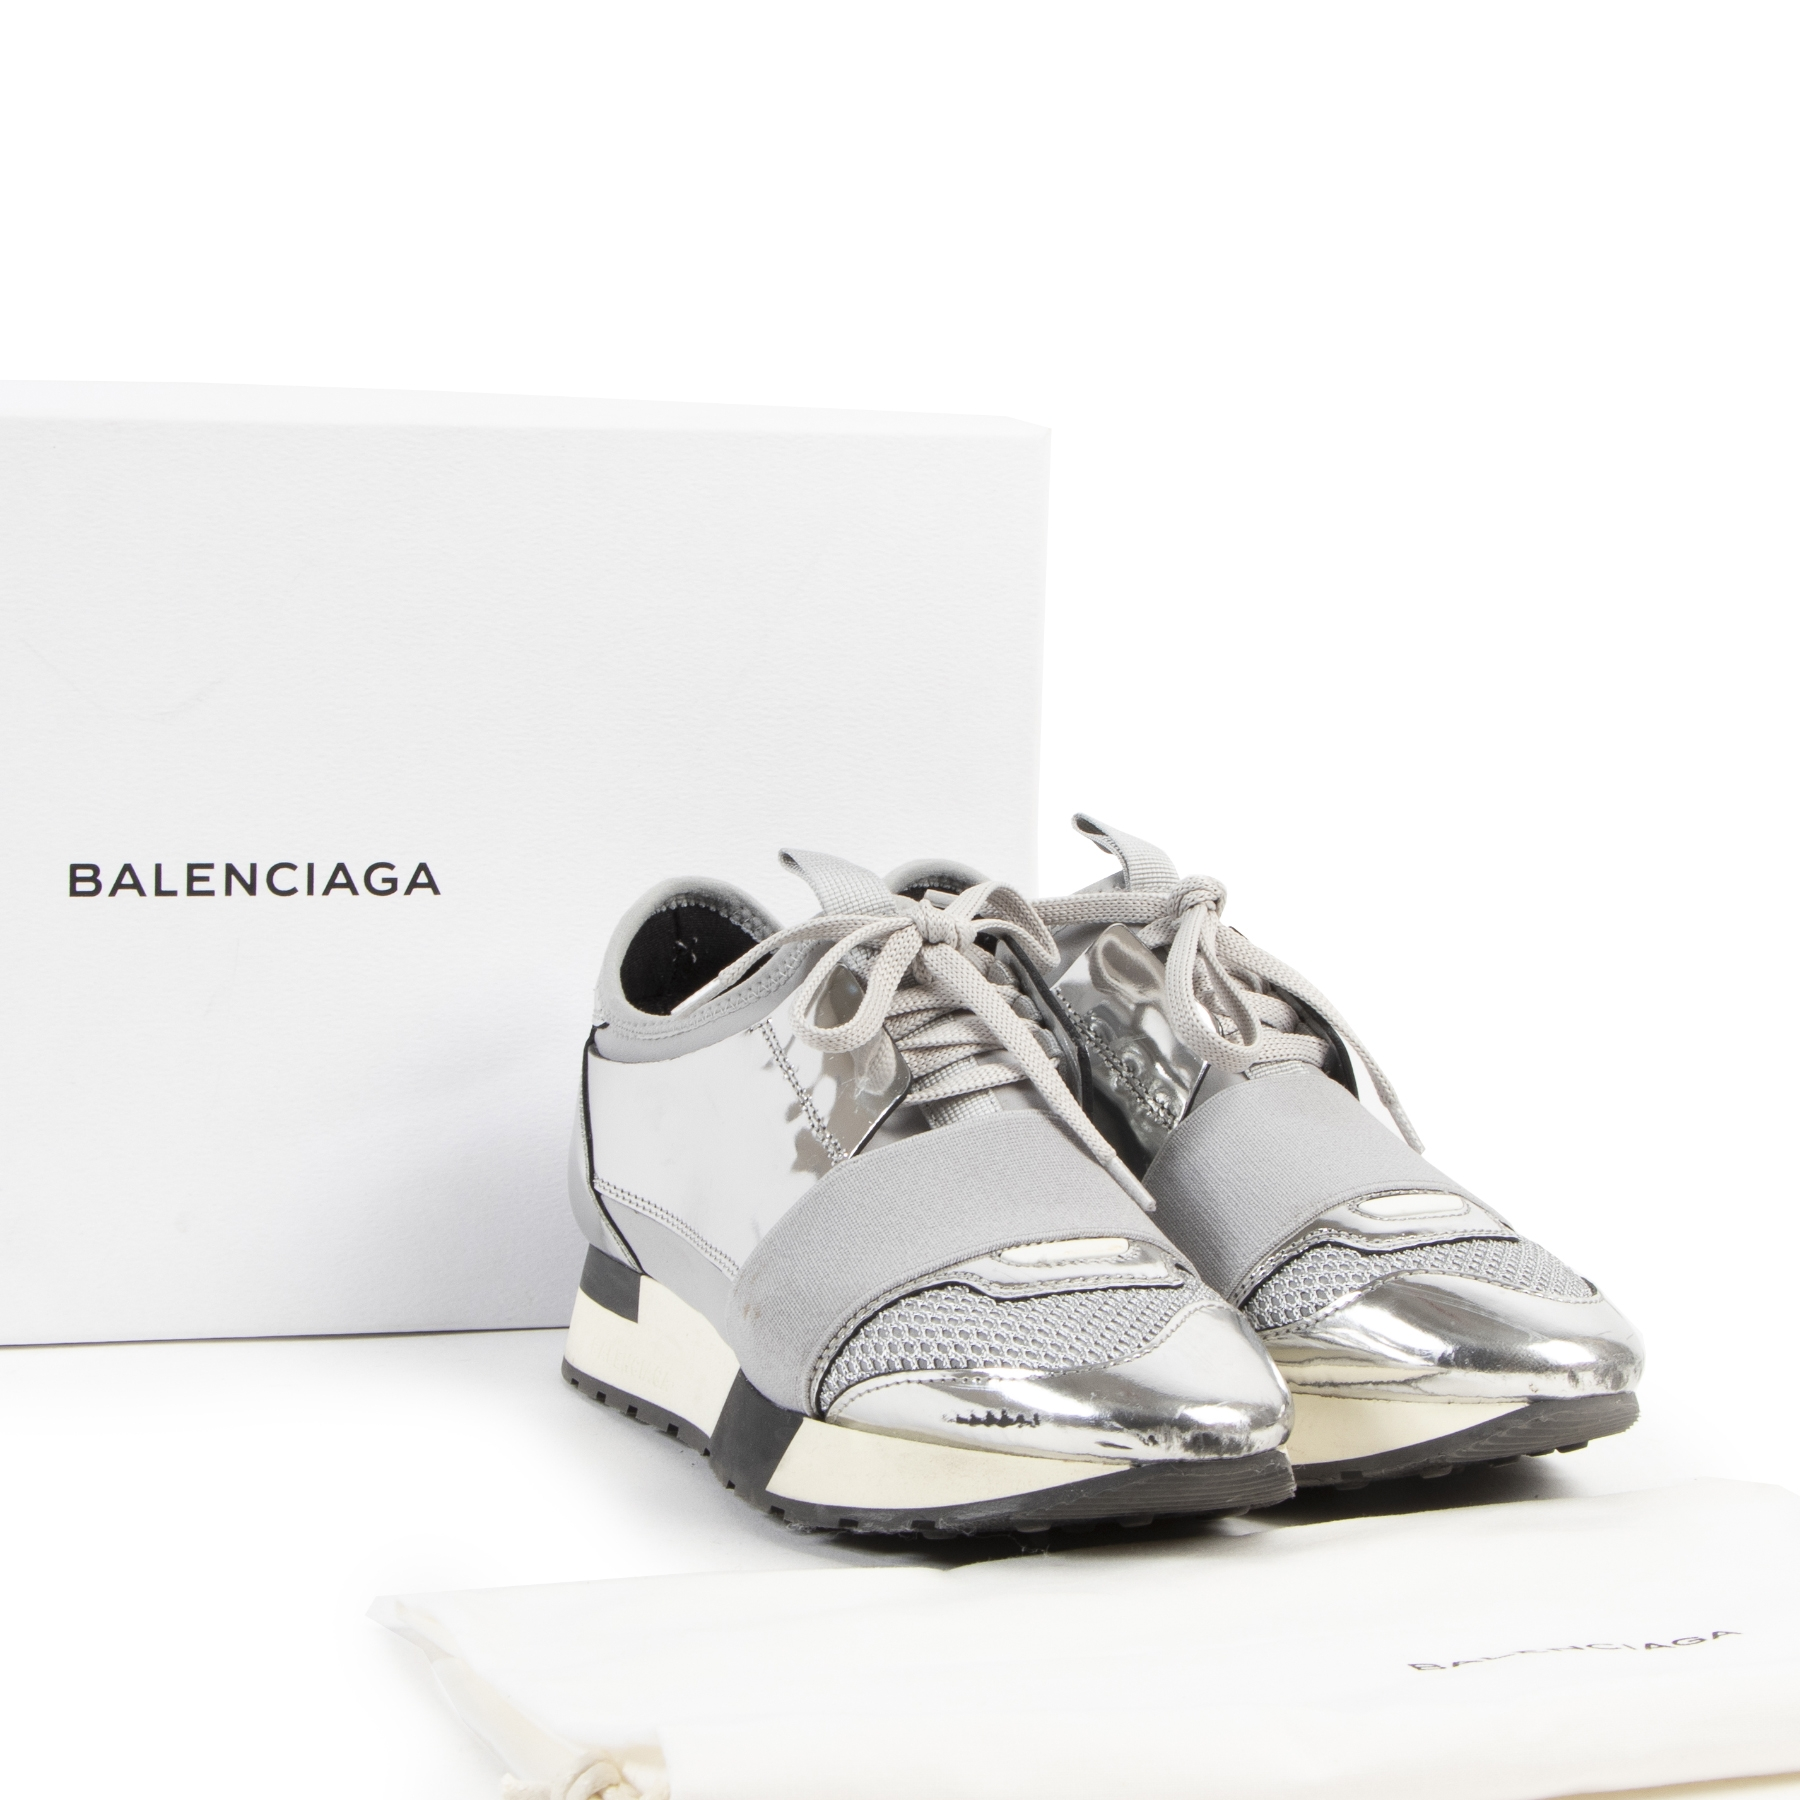 Balenciaga Race Runner Silver Sneakers - size 35 - for sale